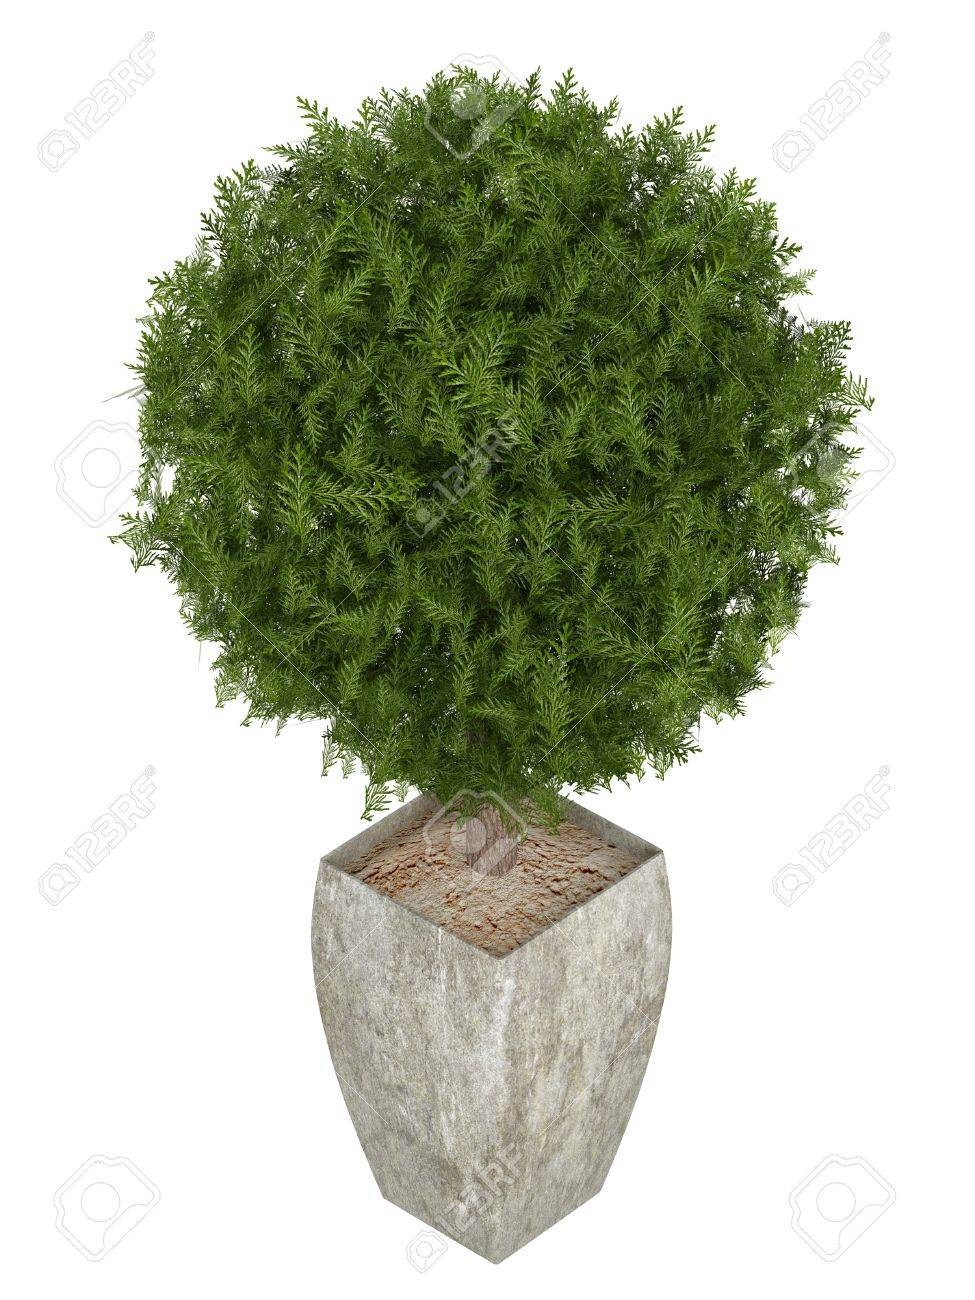 Evergreen Cypress Topiary Tree In A Container For Use Indoors Stock Photo Picture And Royalty Free Image Image 15780182